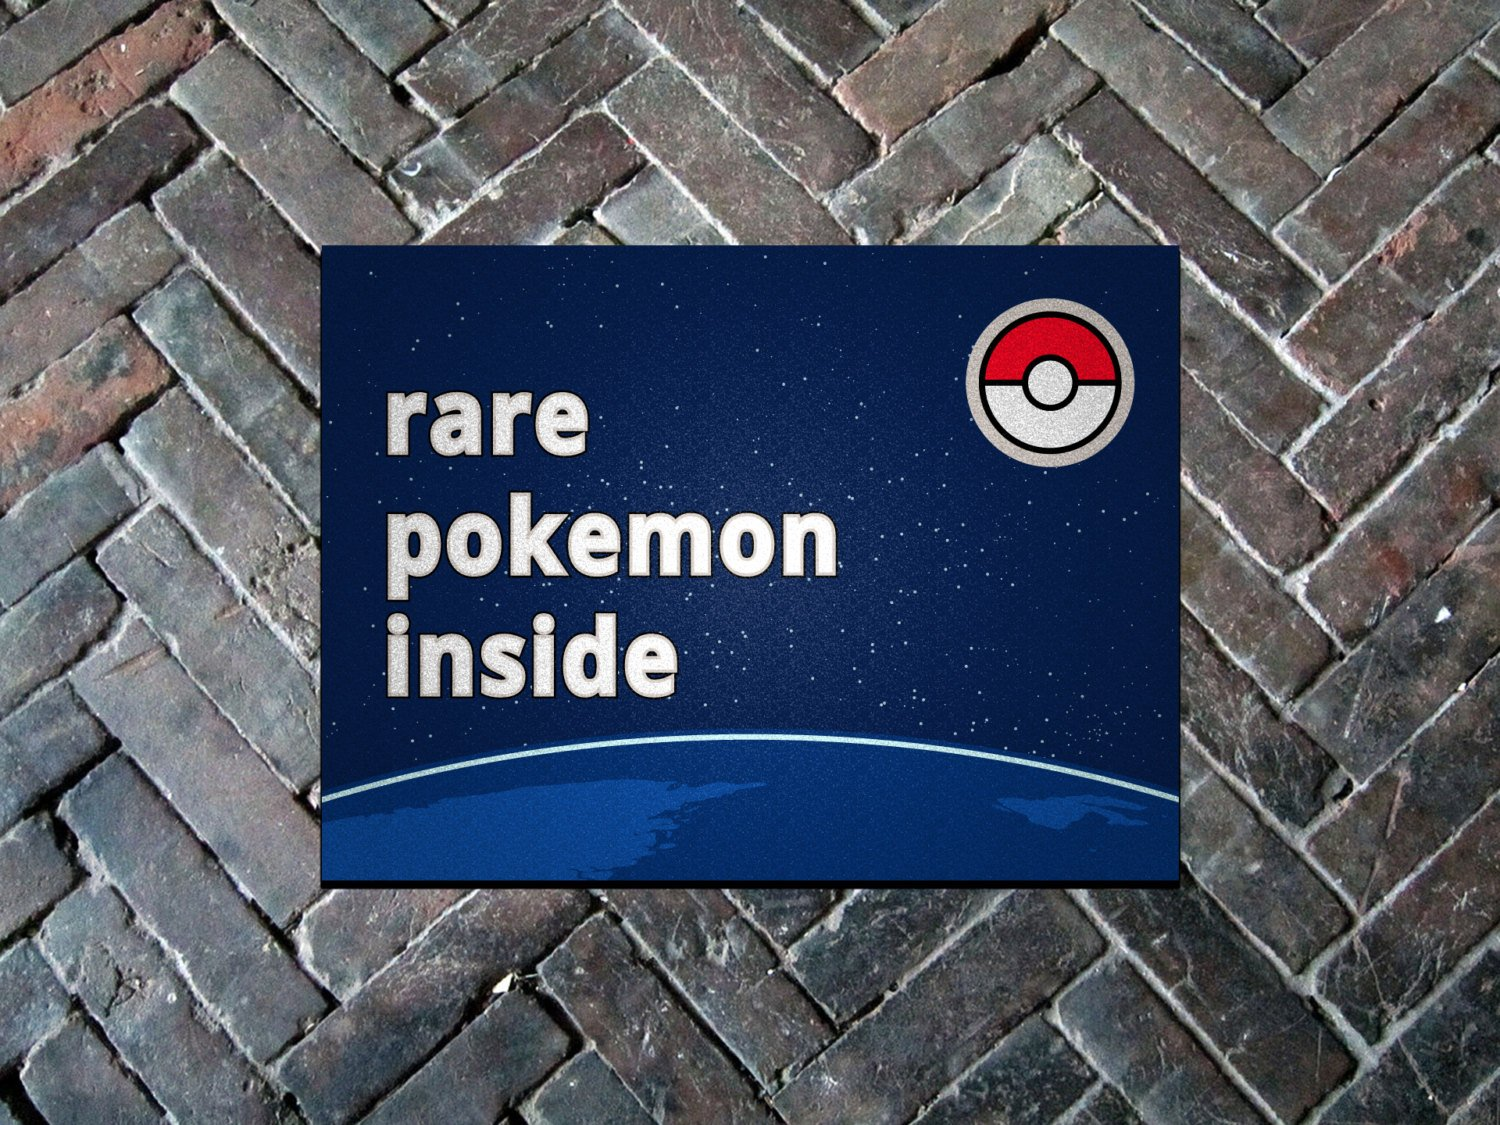 "Pokemon GO, Rare Pokemon Inside 24"" x 36"" Doormat Welcome Floormat"